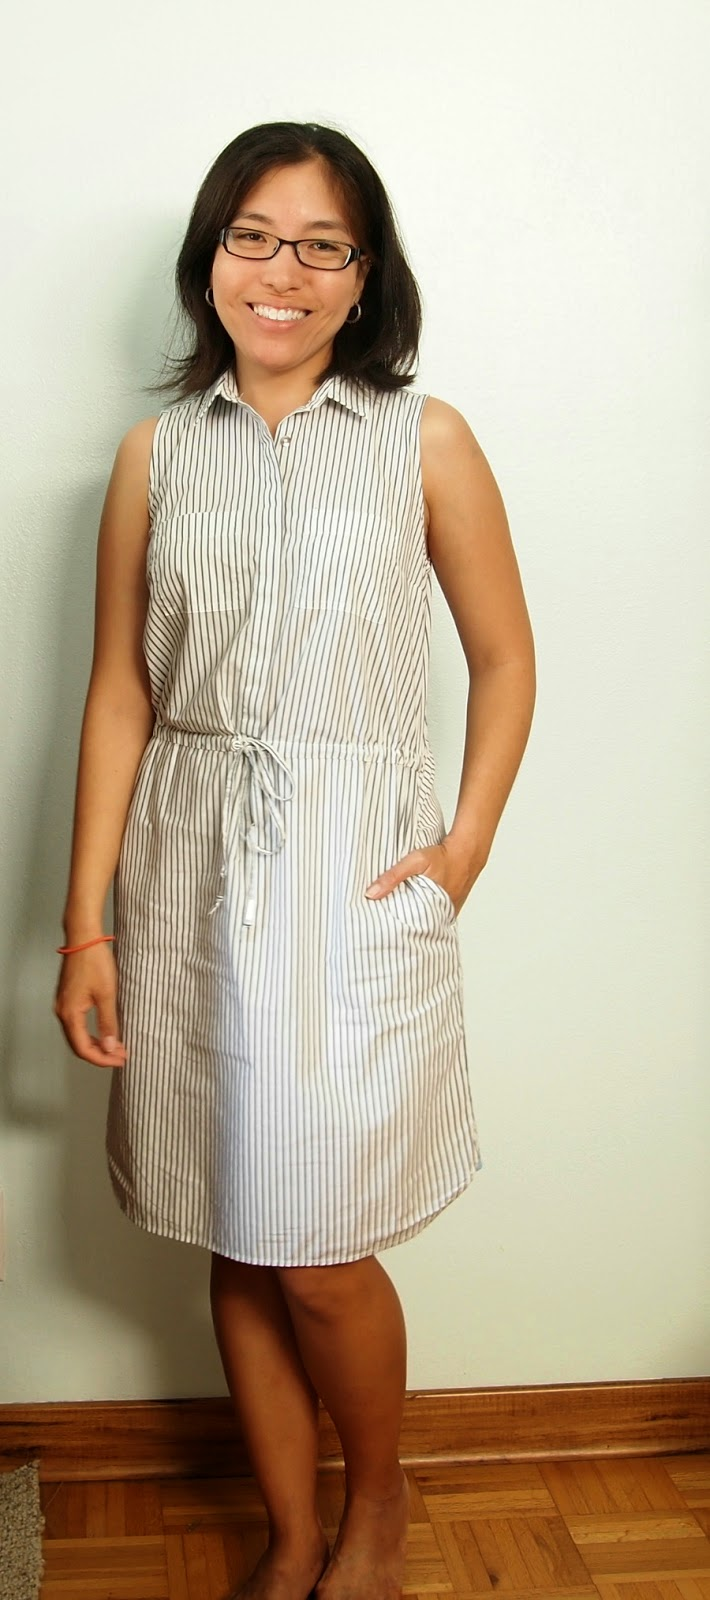 striped dress gray and white teacher style